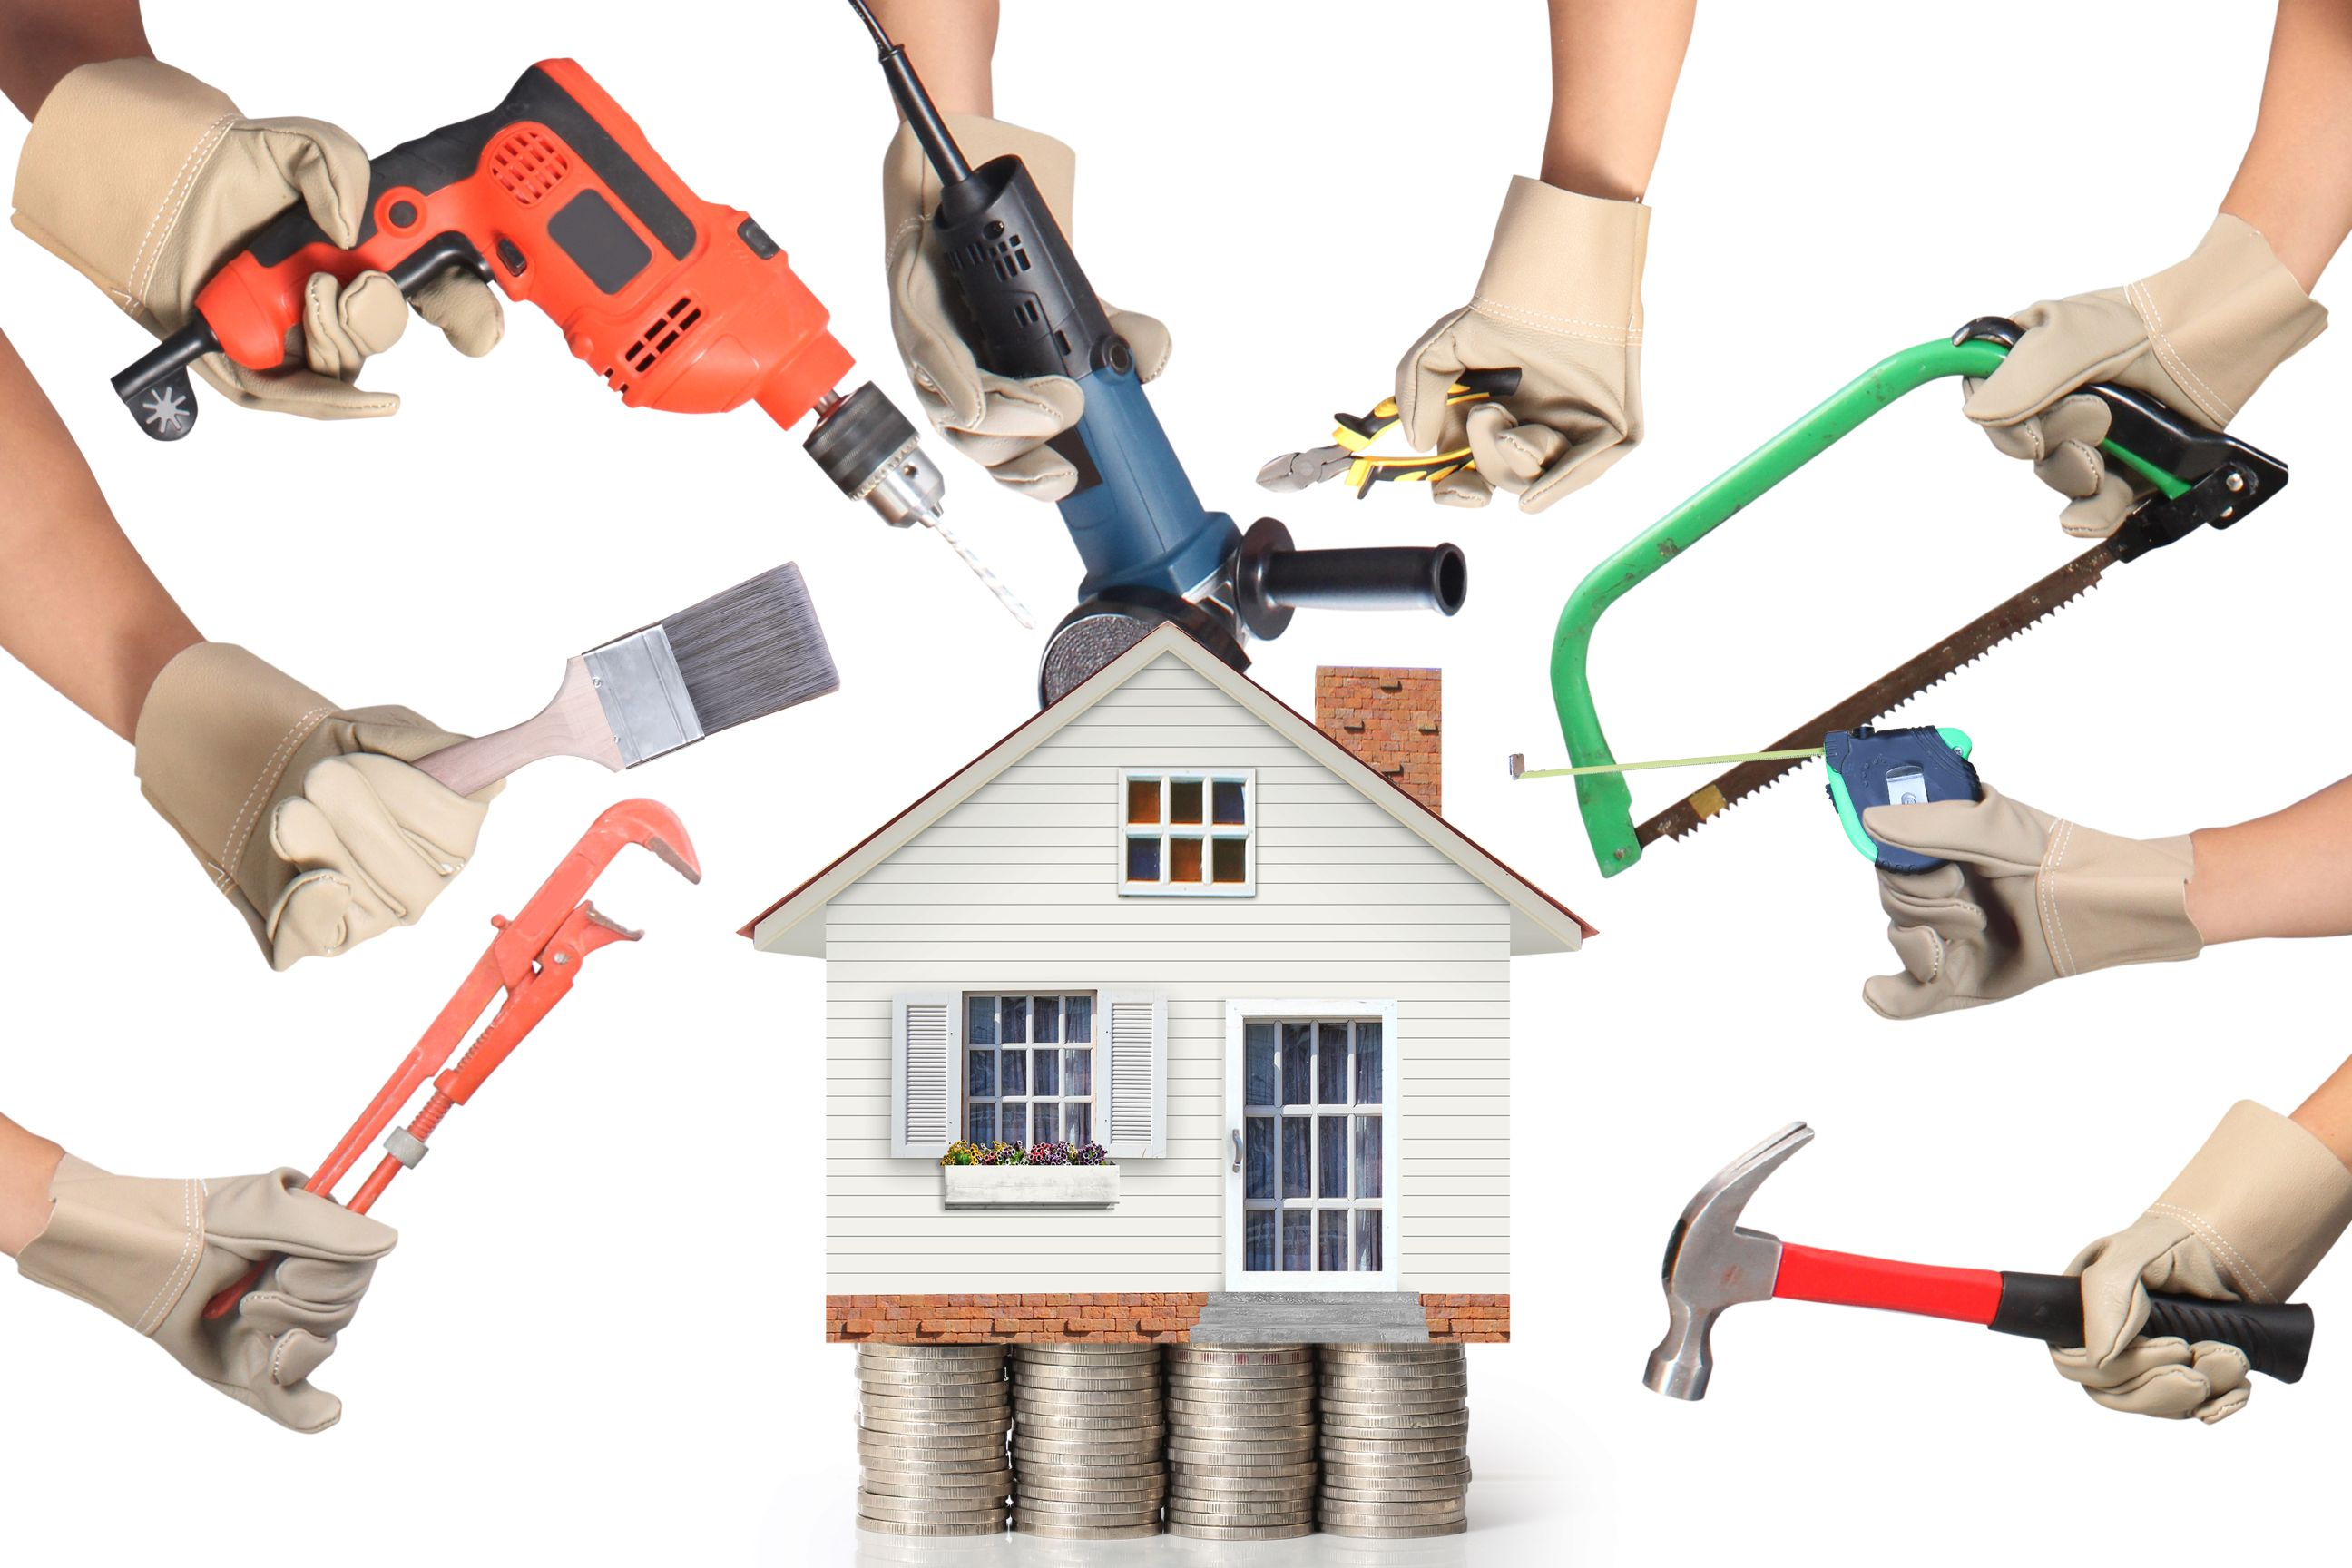 The Top Ten Best Home Upgrades to Consider Before the End of Summer